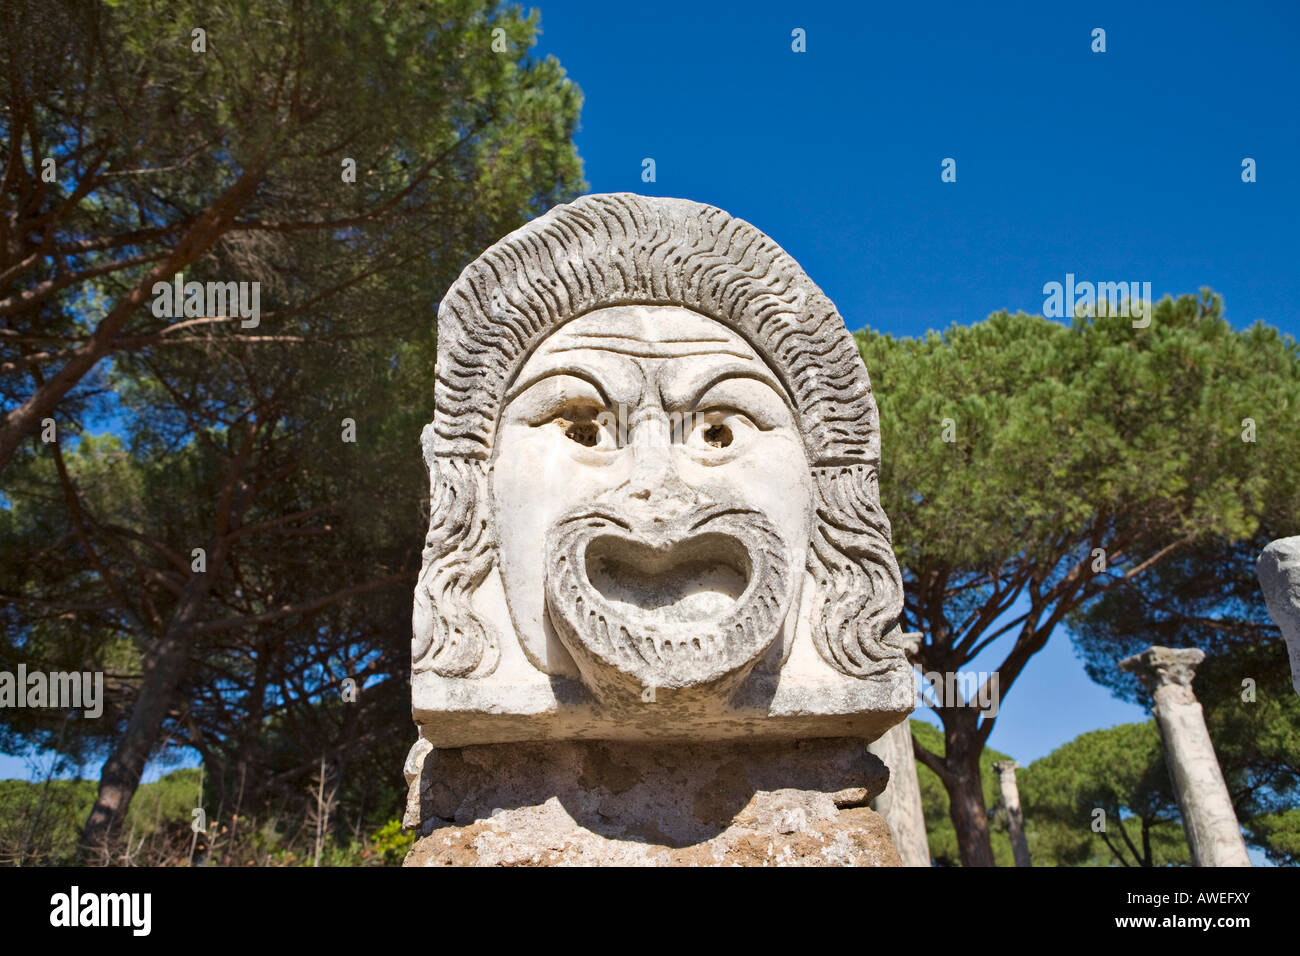 Comical masks at the amphitheatre at Ostia Antica archaeological site, Rome, Italy, Europe - Stock Image